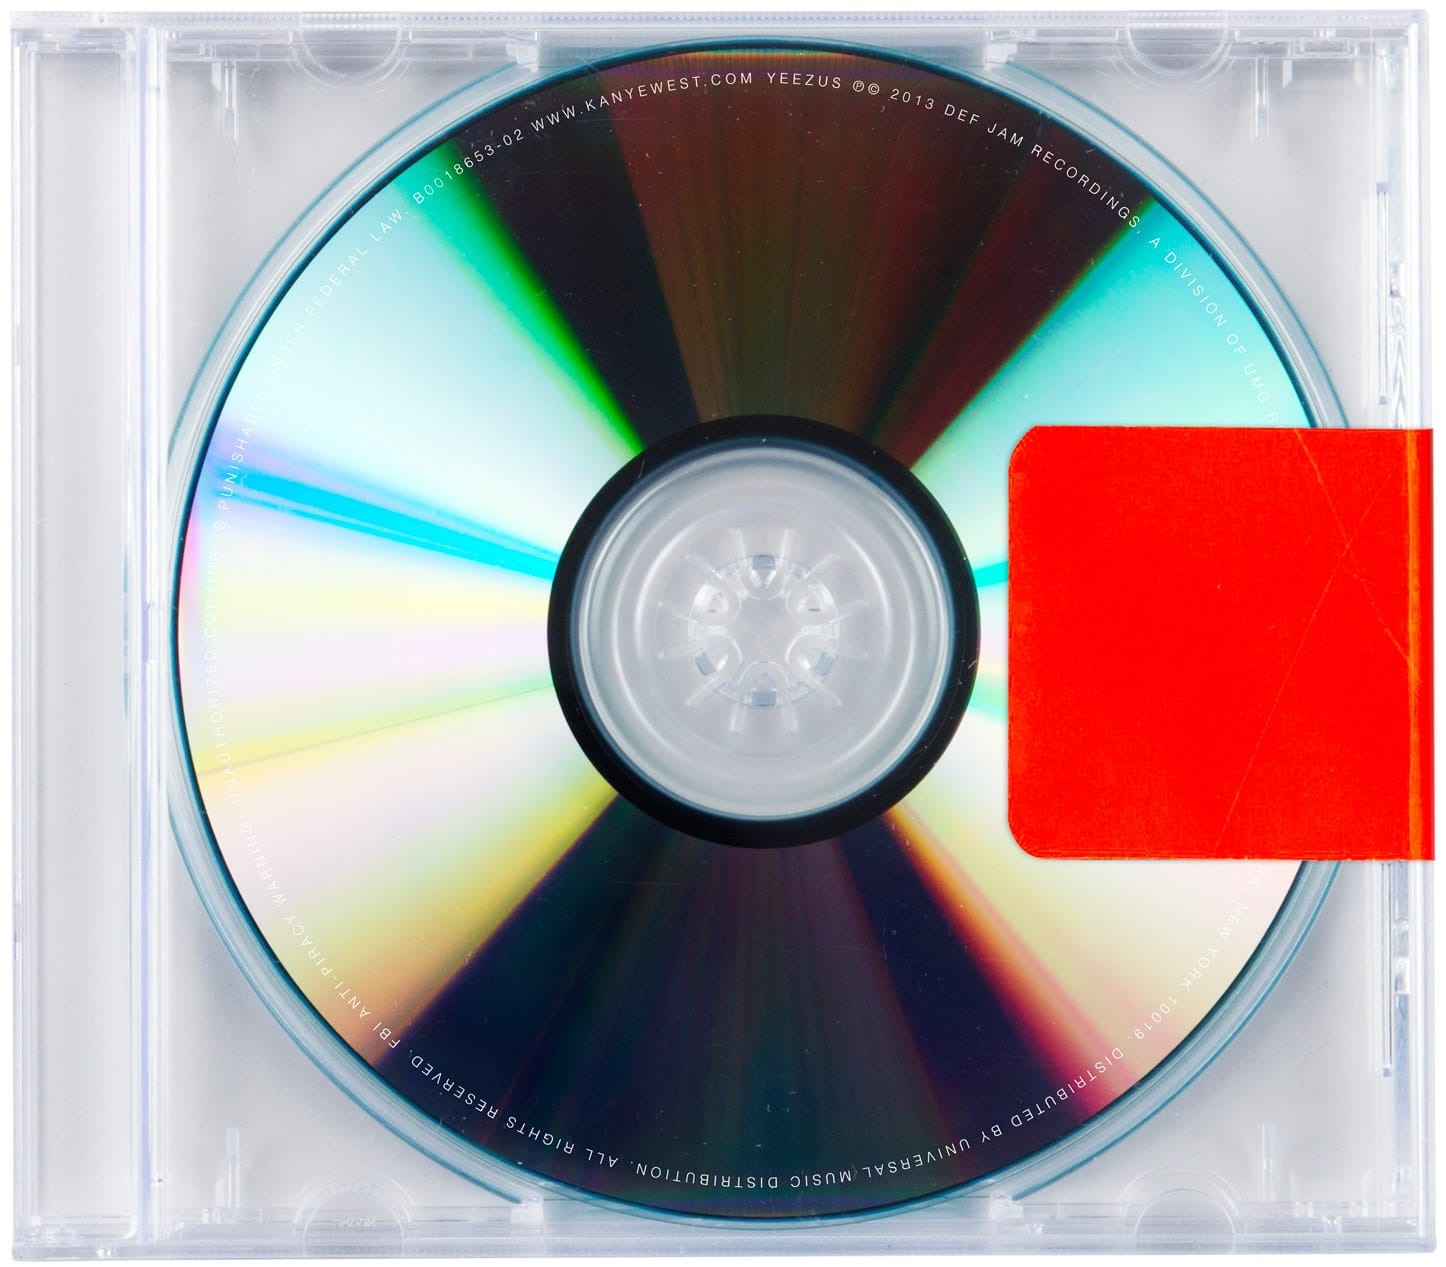 Laura Penny says Yeezus track has 'all the feels'